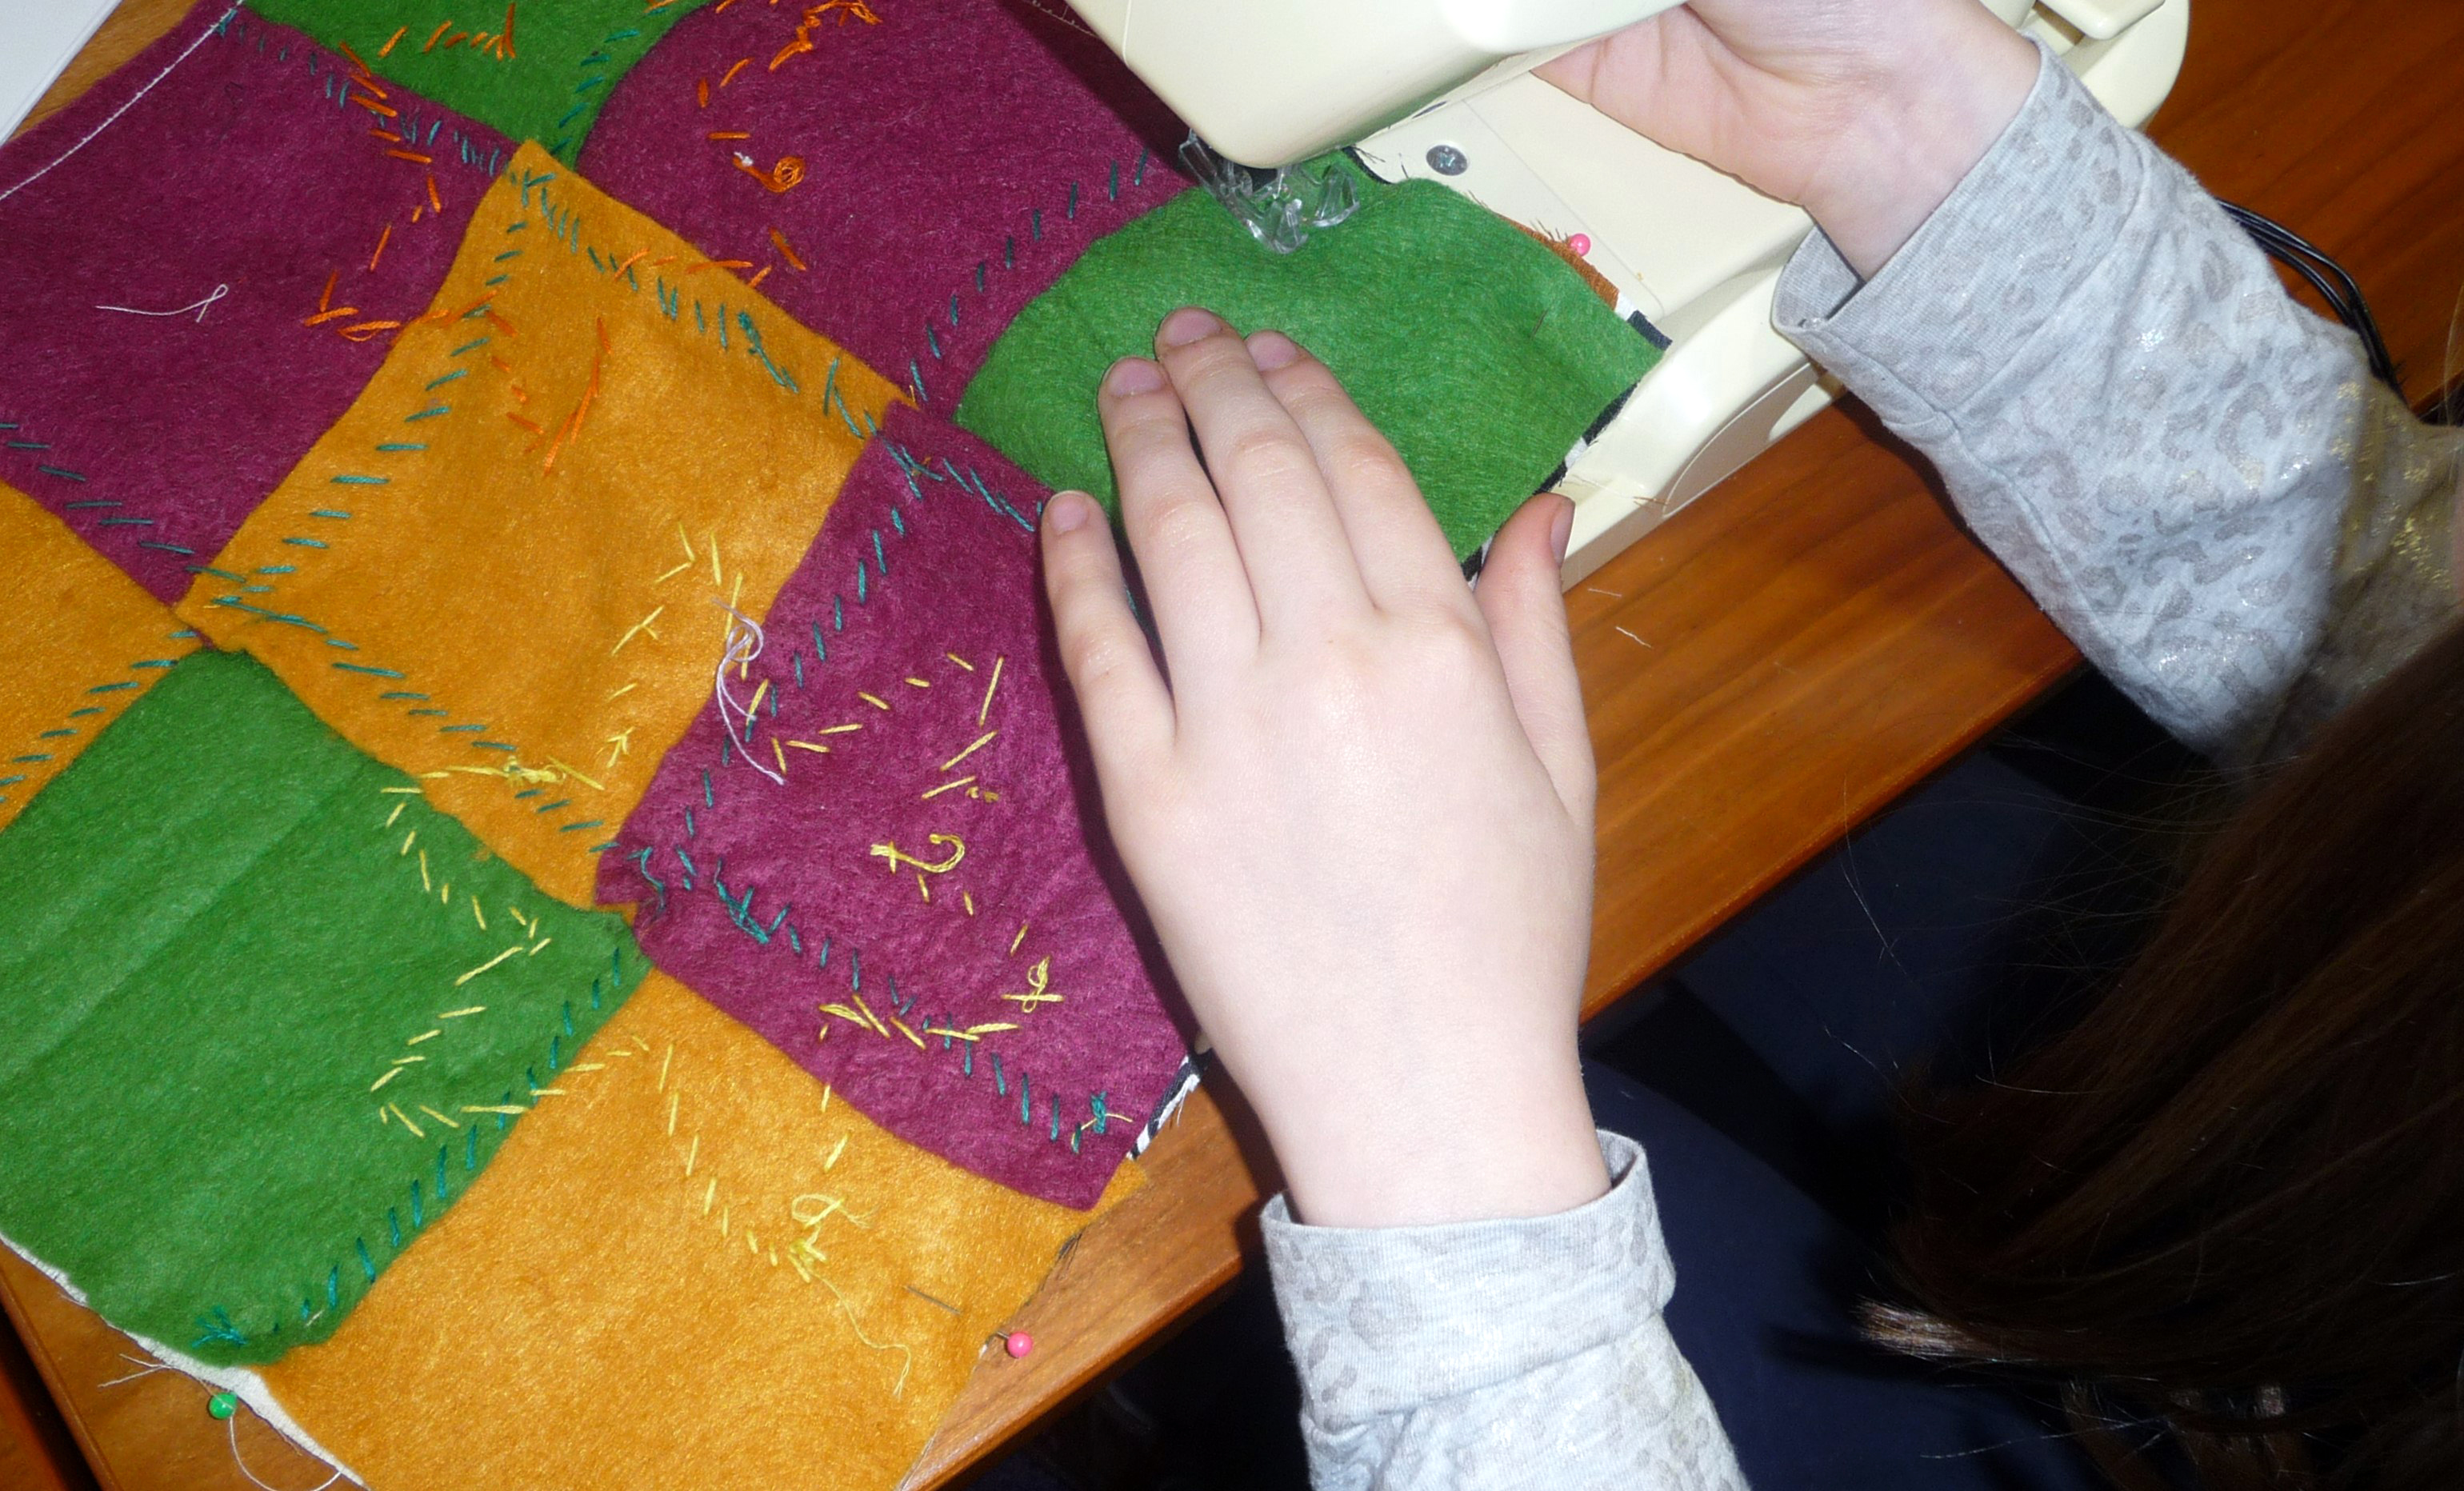 we used the sewing machine to join back and front of the cushion together during YE group meeting in March 2015